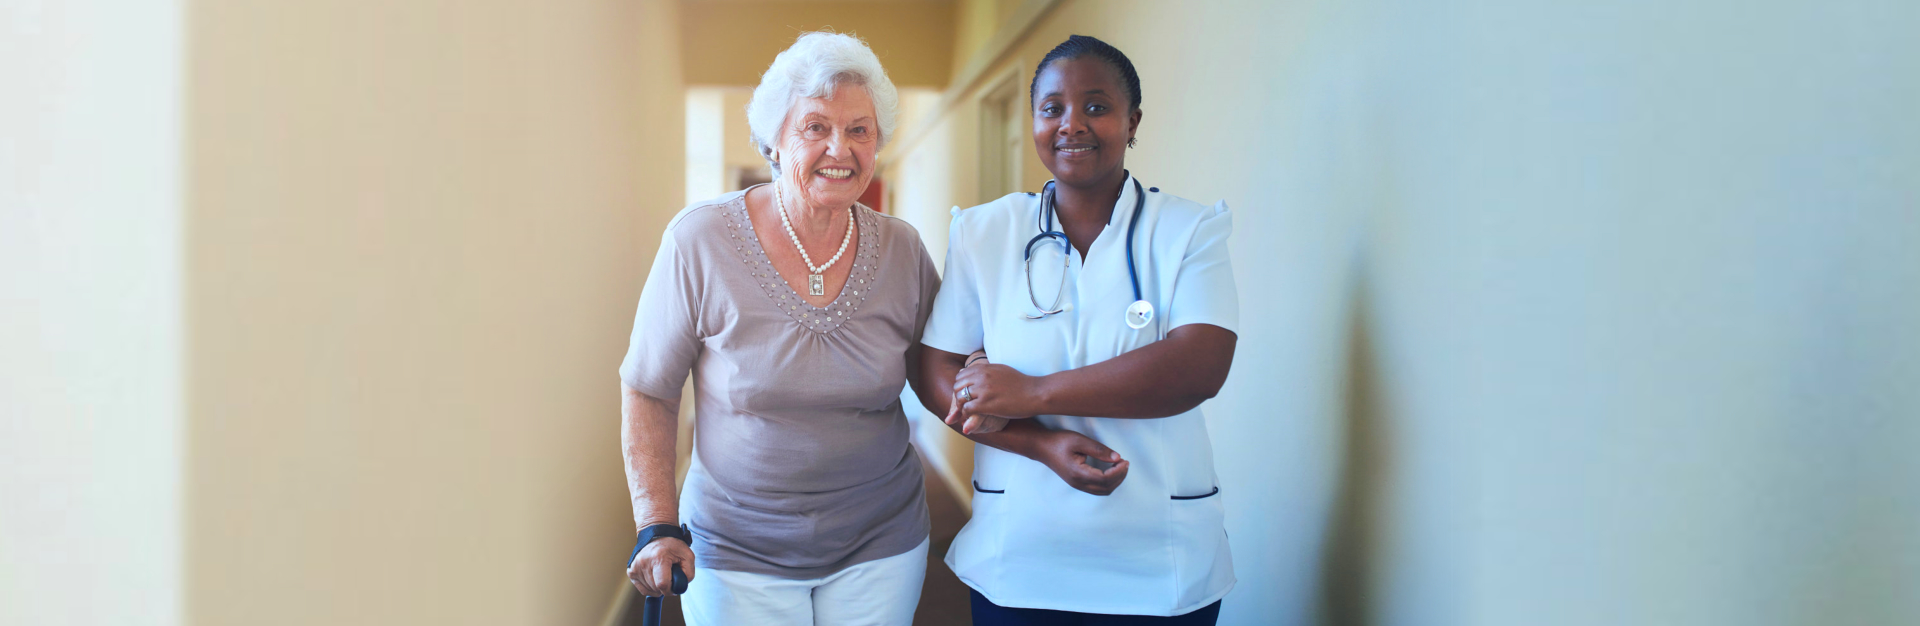 senior woman with caregiver walking in the hallway